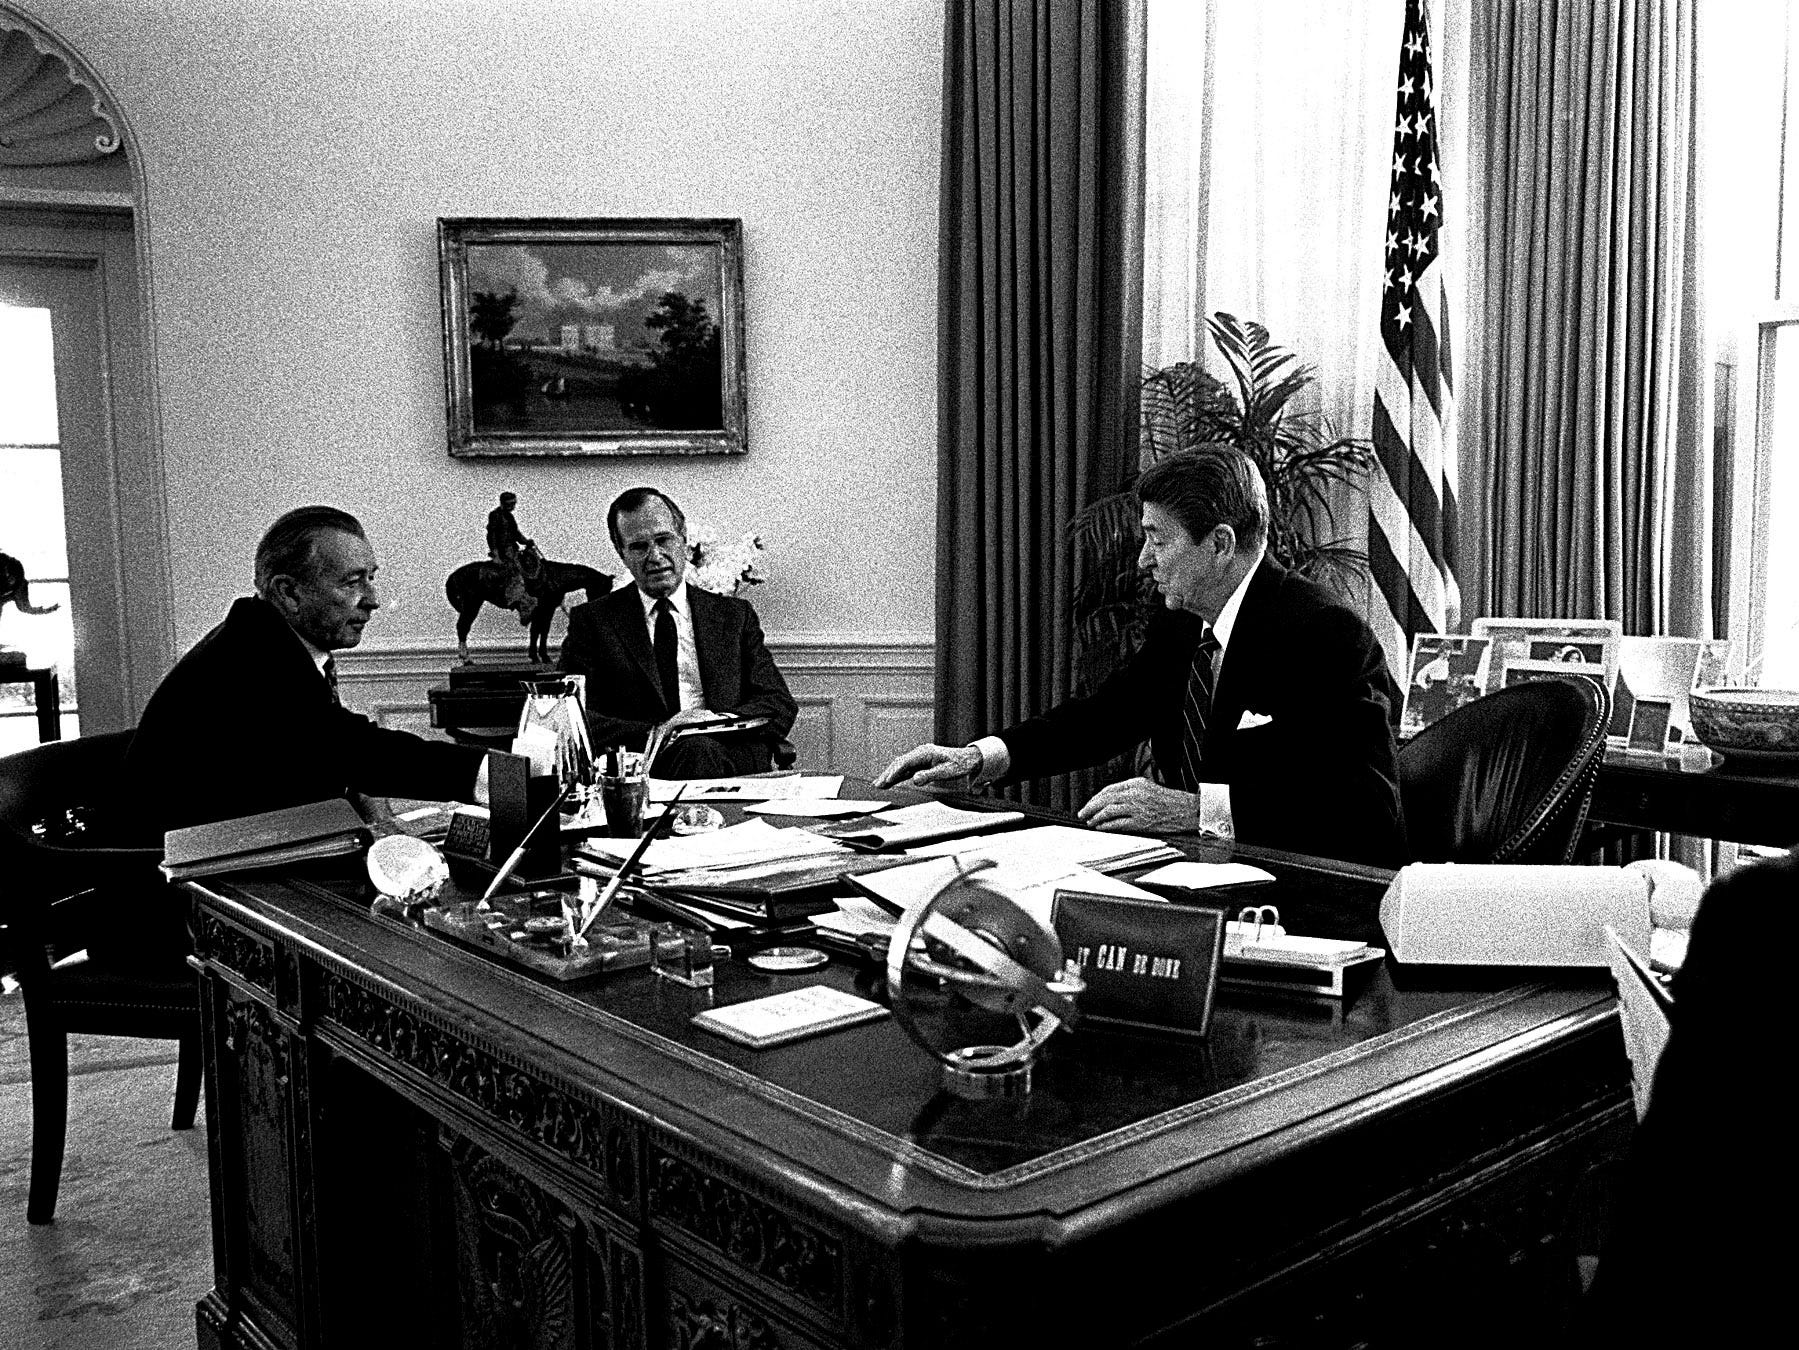 President Reagan holds a meeting in the Oval Office with chief of staff Don Regan,left, vice-president George Bush, and longtime staffer Michael Deaver, right. April, 1985.